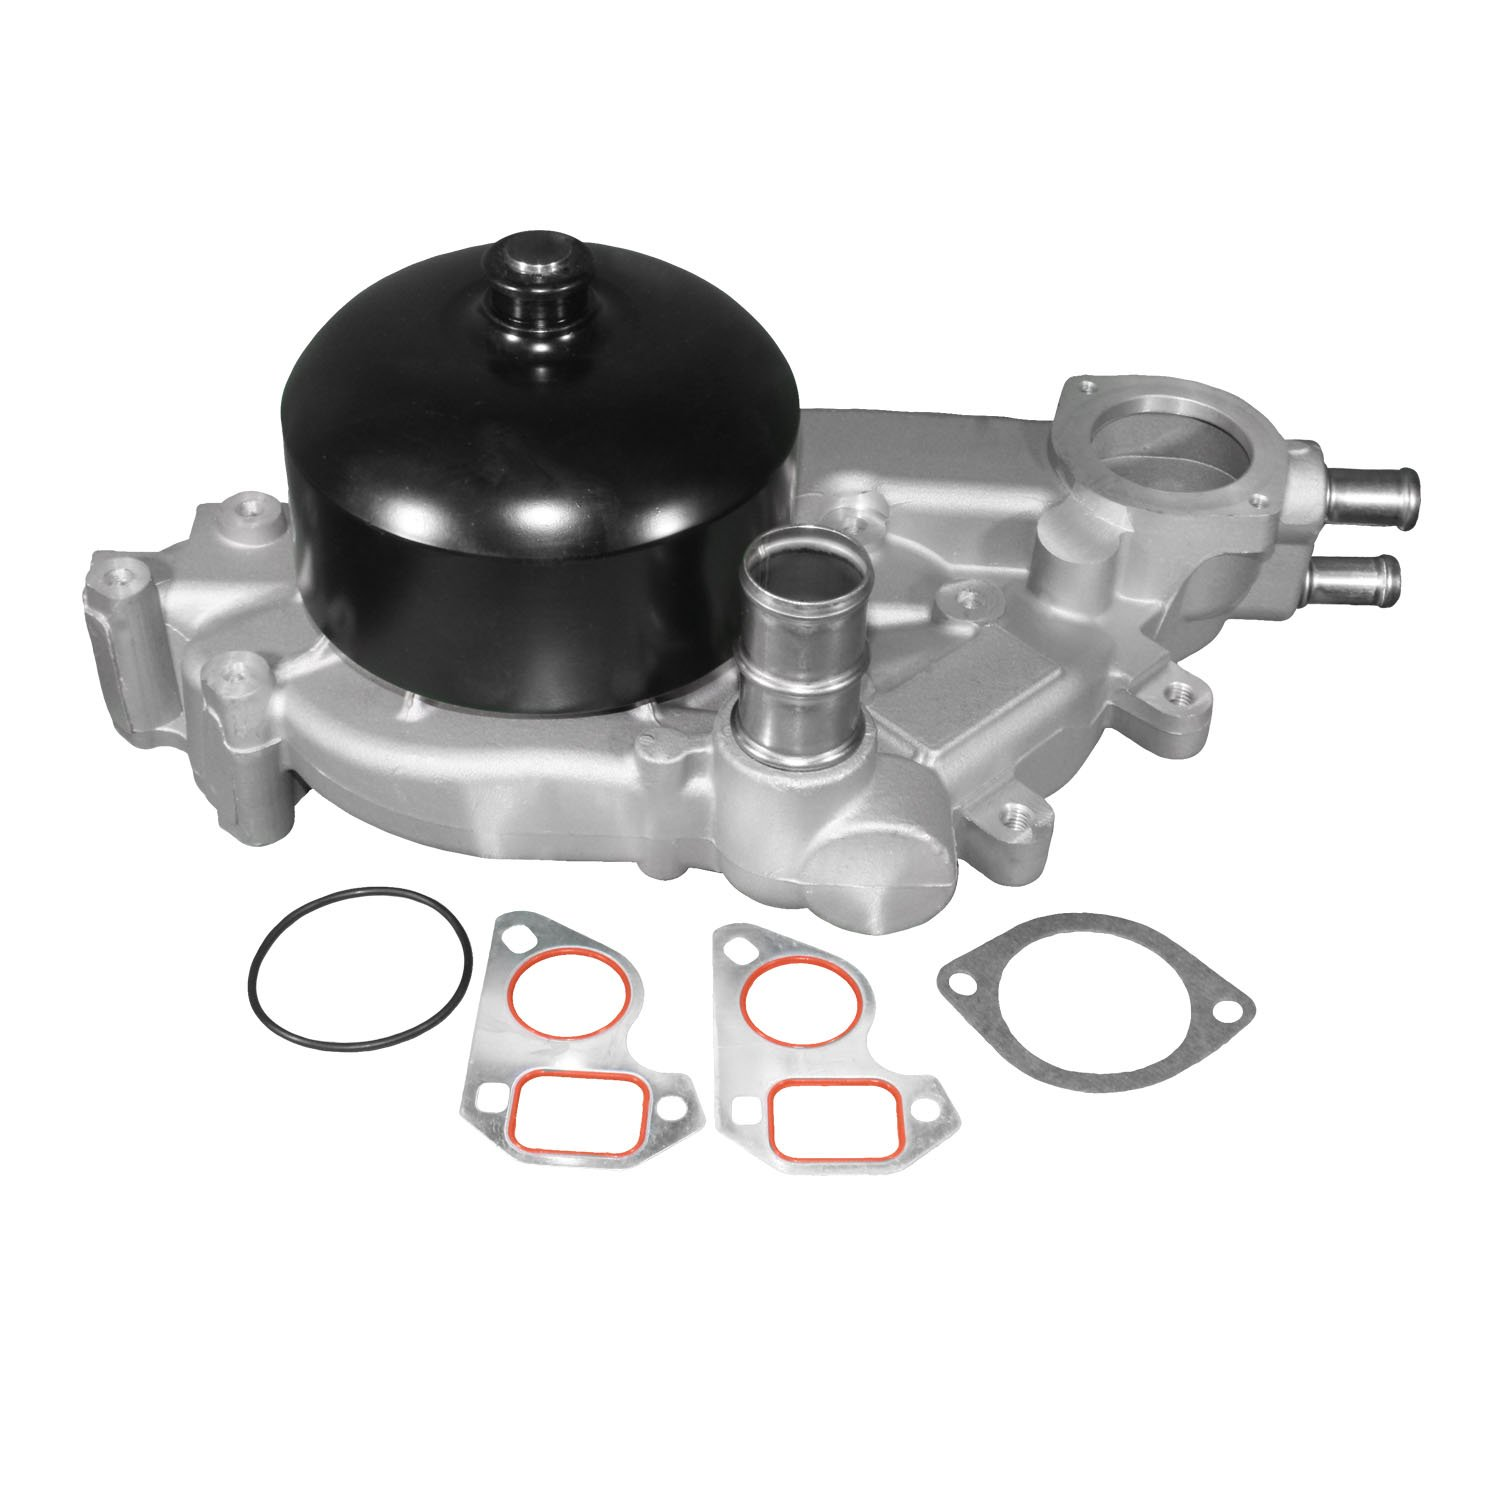 ACDelco 252-846 Professional Water Pump Kit by ACDelco